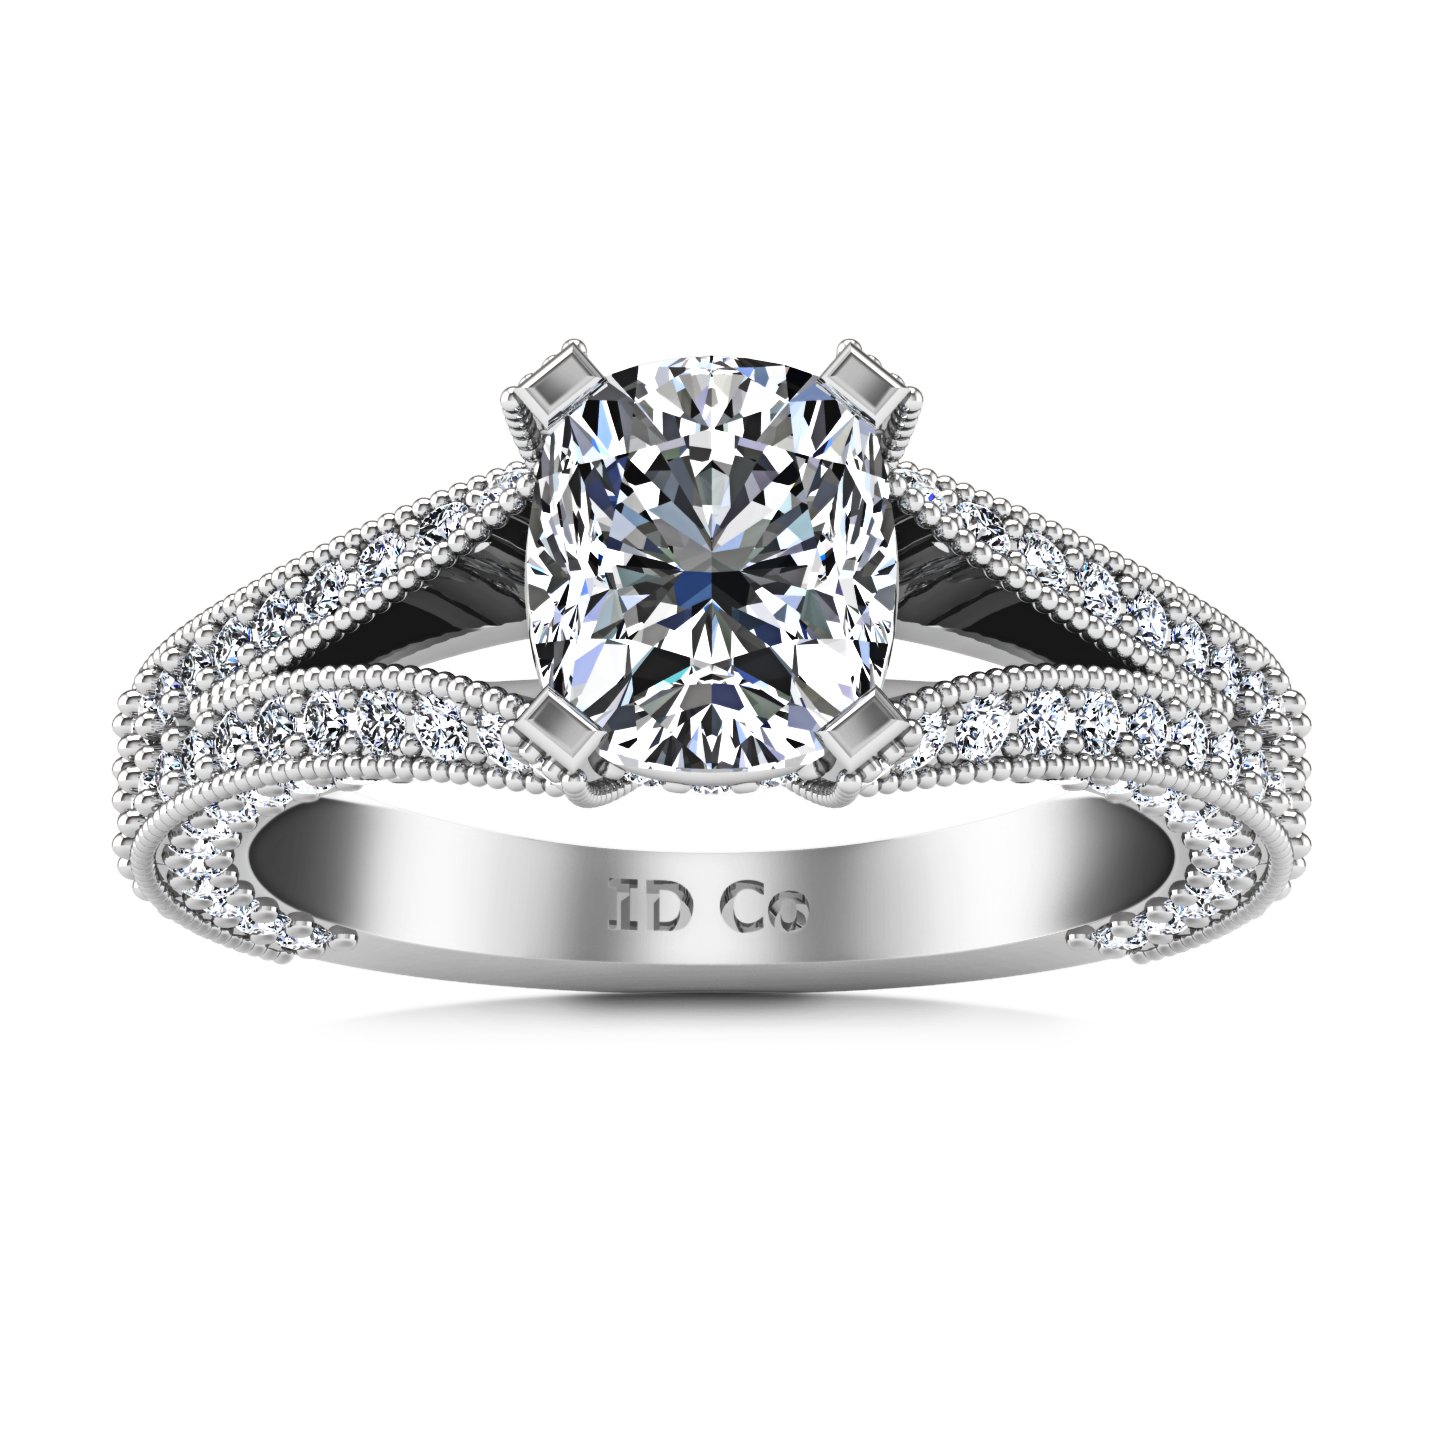 cut carat product beautiful diamond engagement image round betteridge rings cuygikd ring brilliant